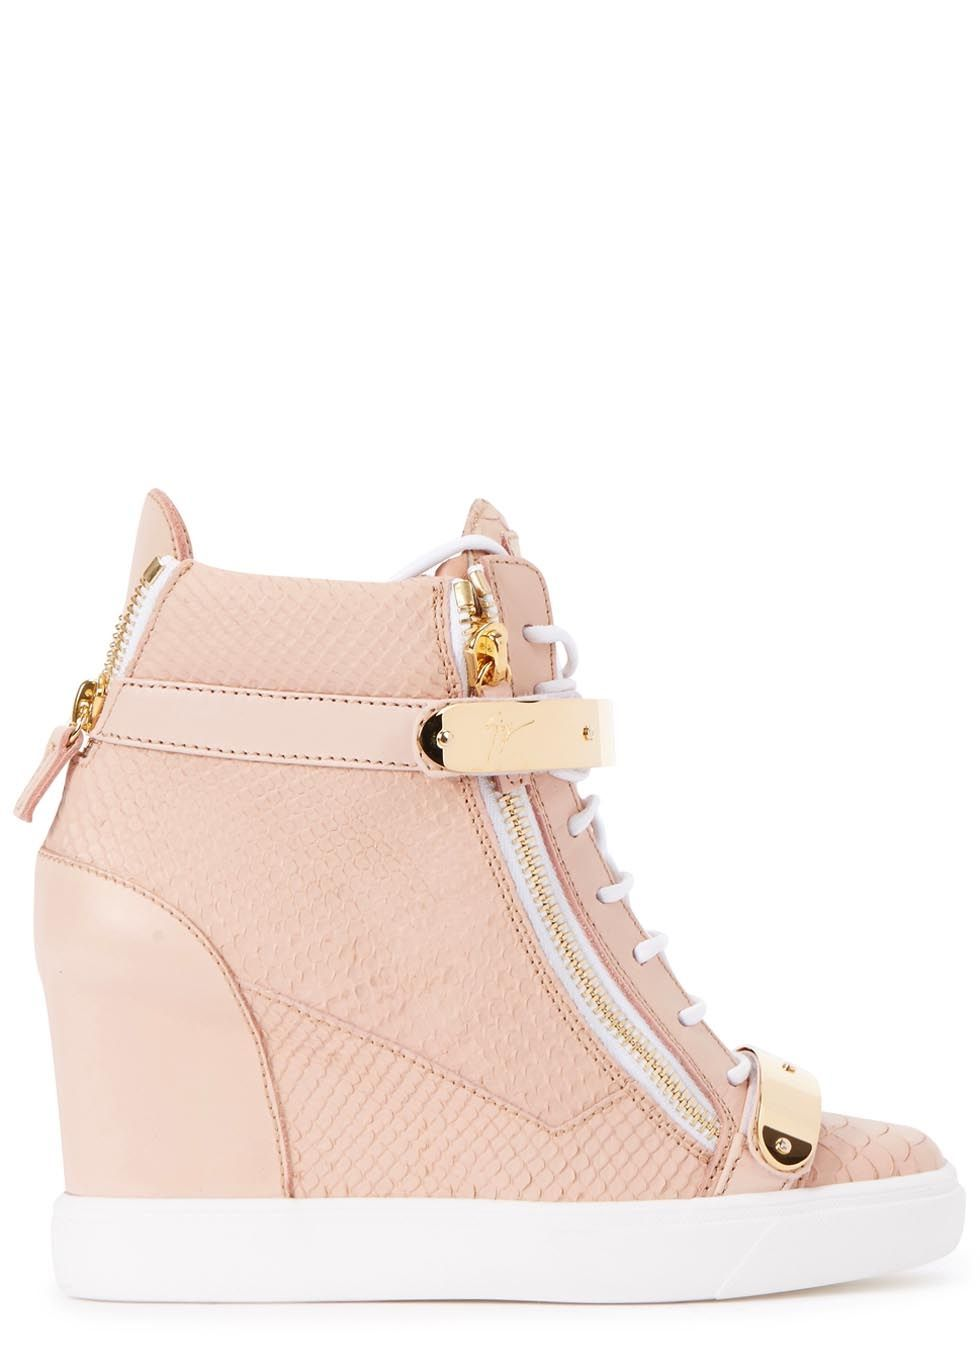 wholesale dealer 3f844 dd8ef Giuseppe Zanotti rose leather hi-top trainers Concealed wedge heel measures  approximately 3.5 inches